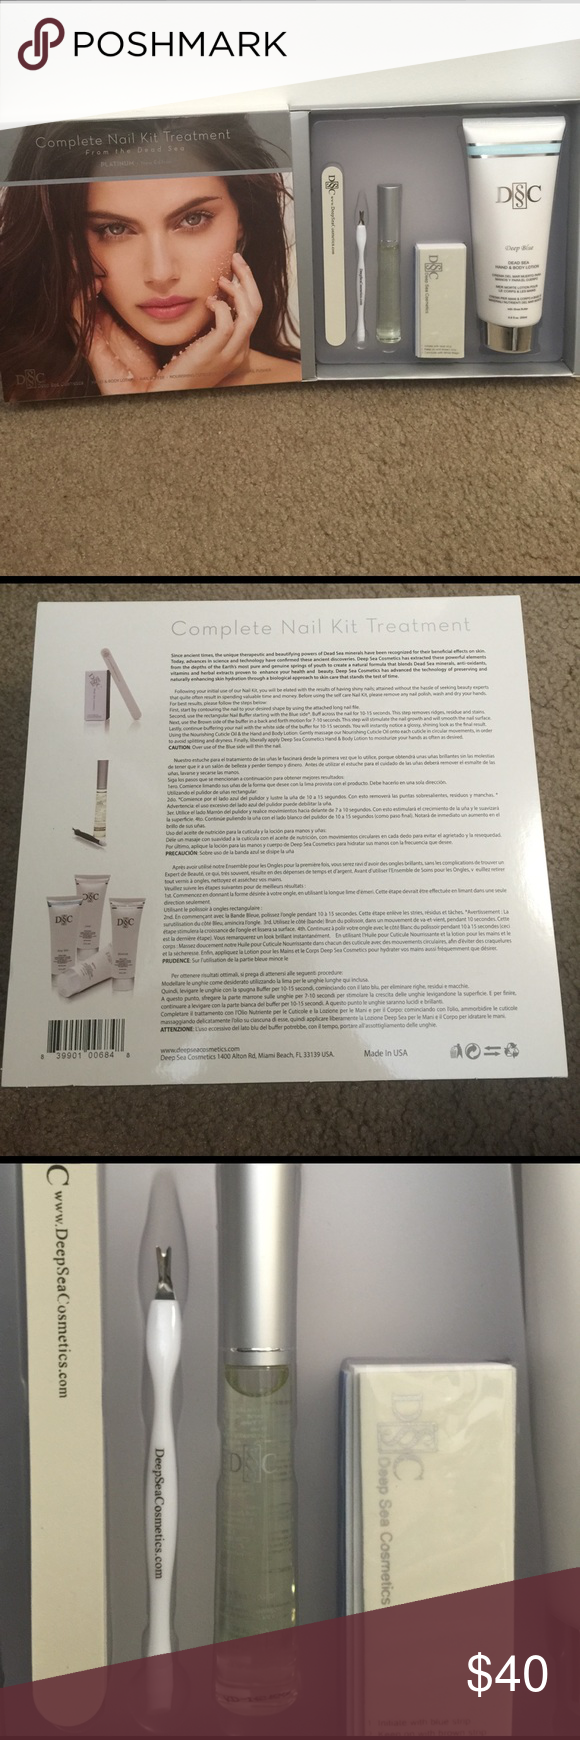 Dead Sea Nail Kit | Cosmetics, Bodies and Customer support